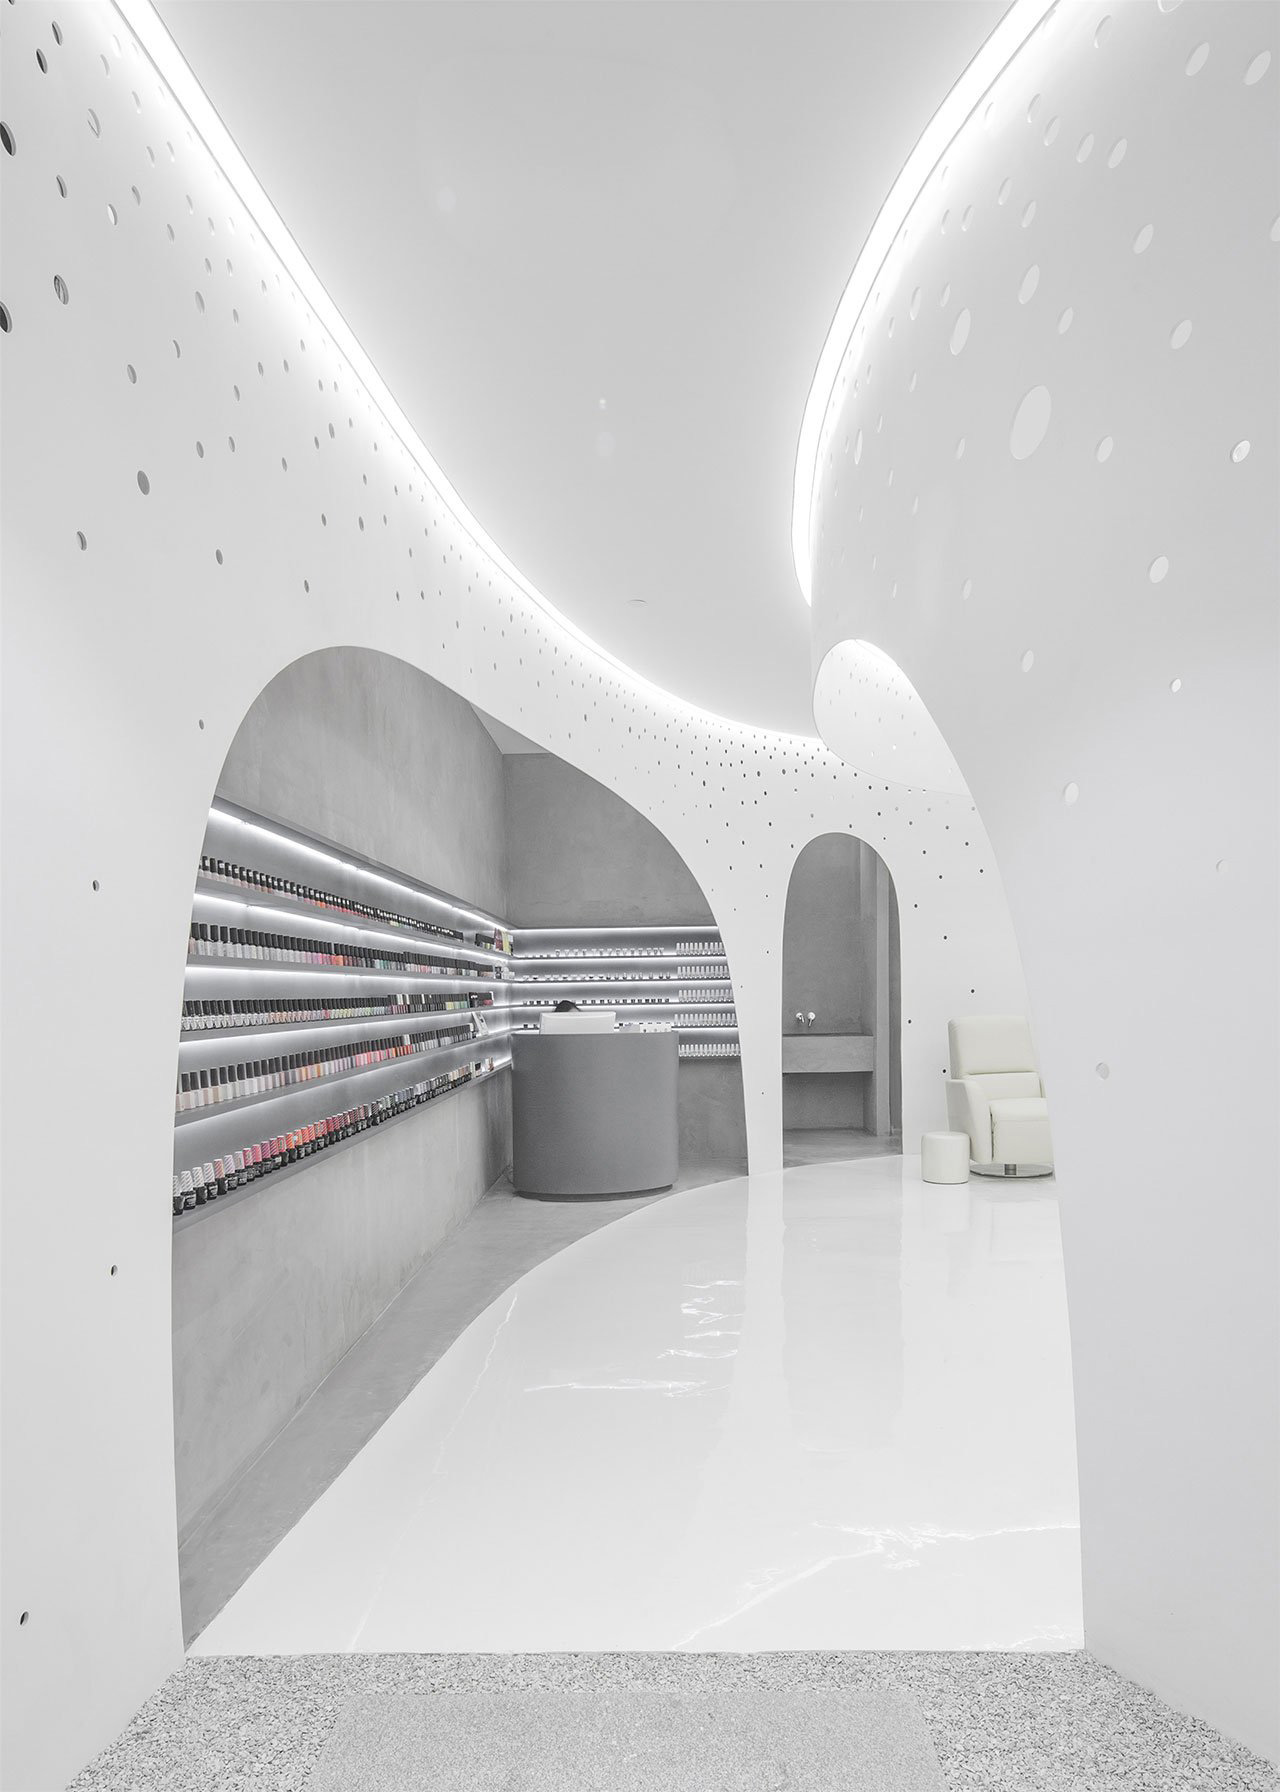 Lily Nails: Nail & Eyelash Salon by Archstudio | Yellowtrace